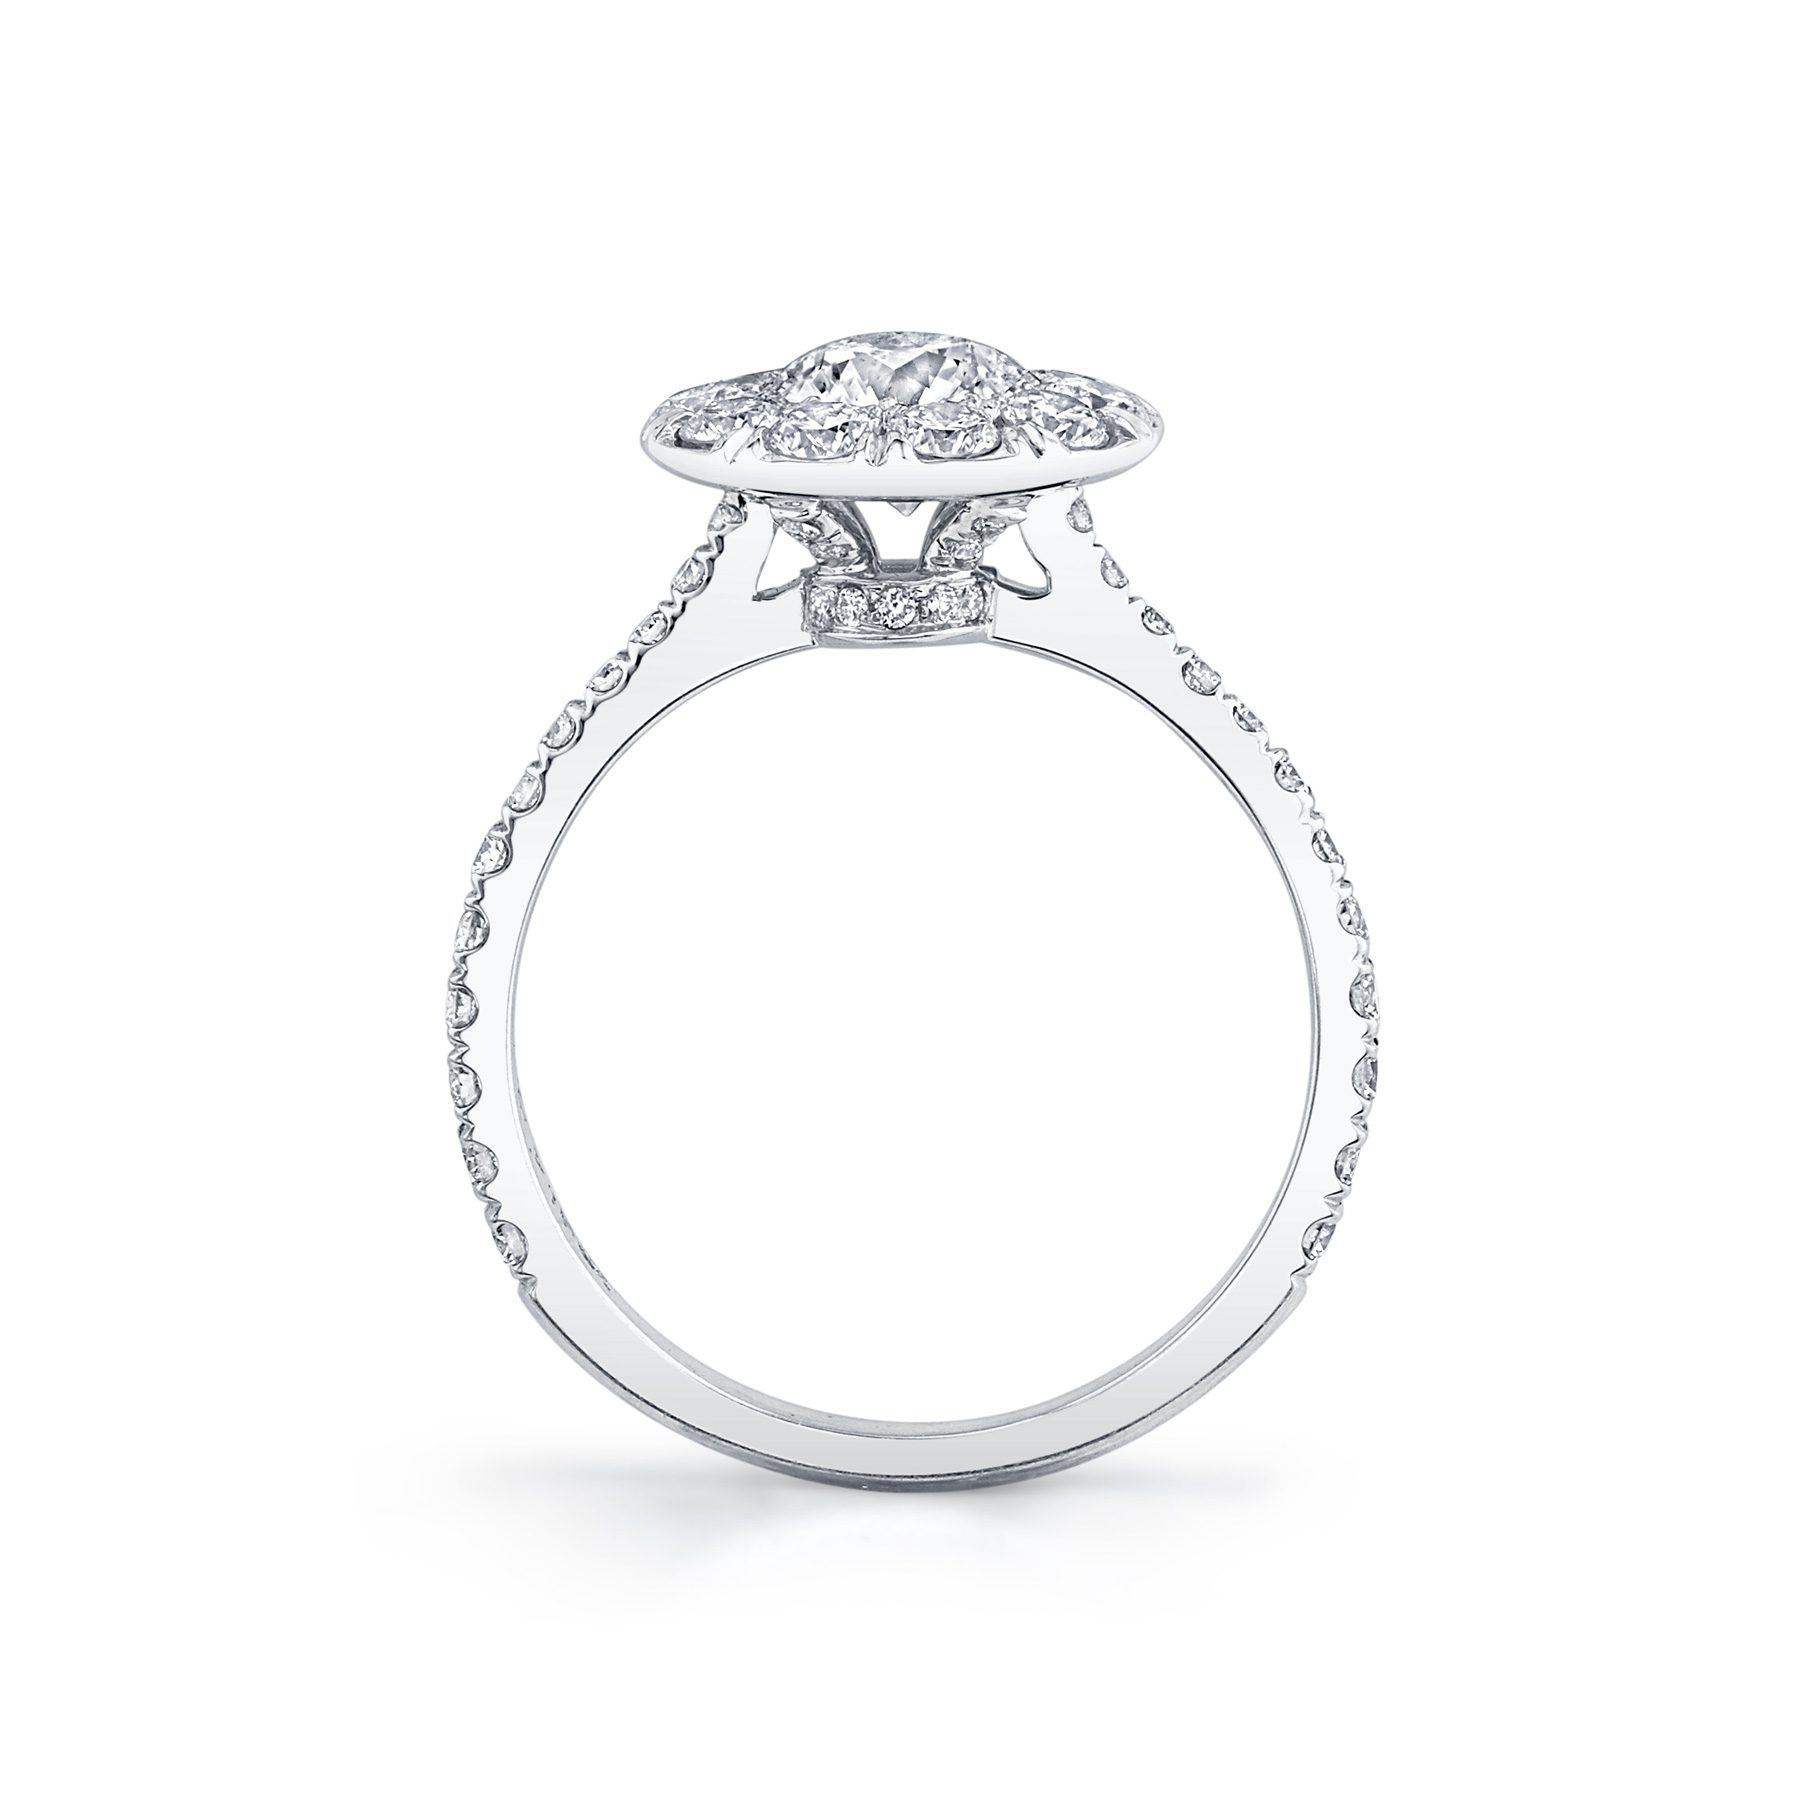 Eloise Round Brilliant Seamless Solitaire® Engagement Ring with diamond pavé in 18k White Gold Standing View by Oui by Jean Dousset